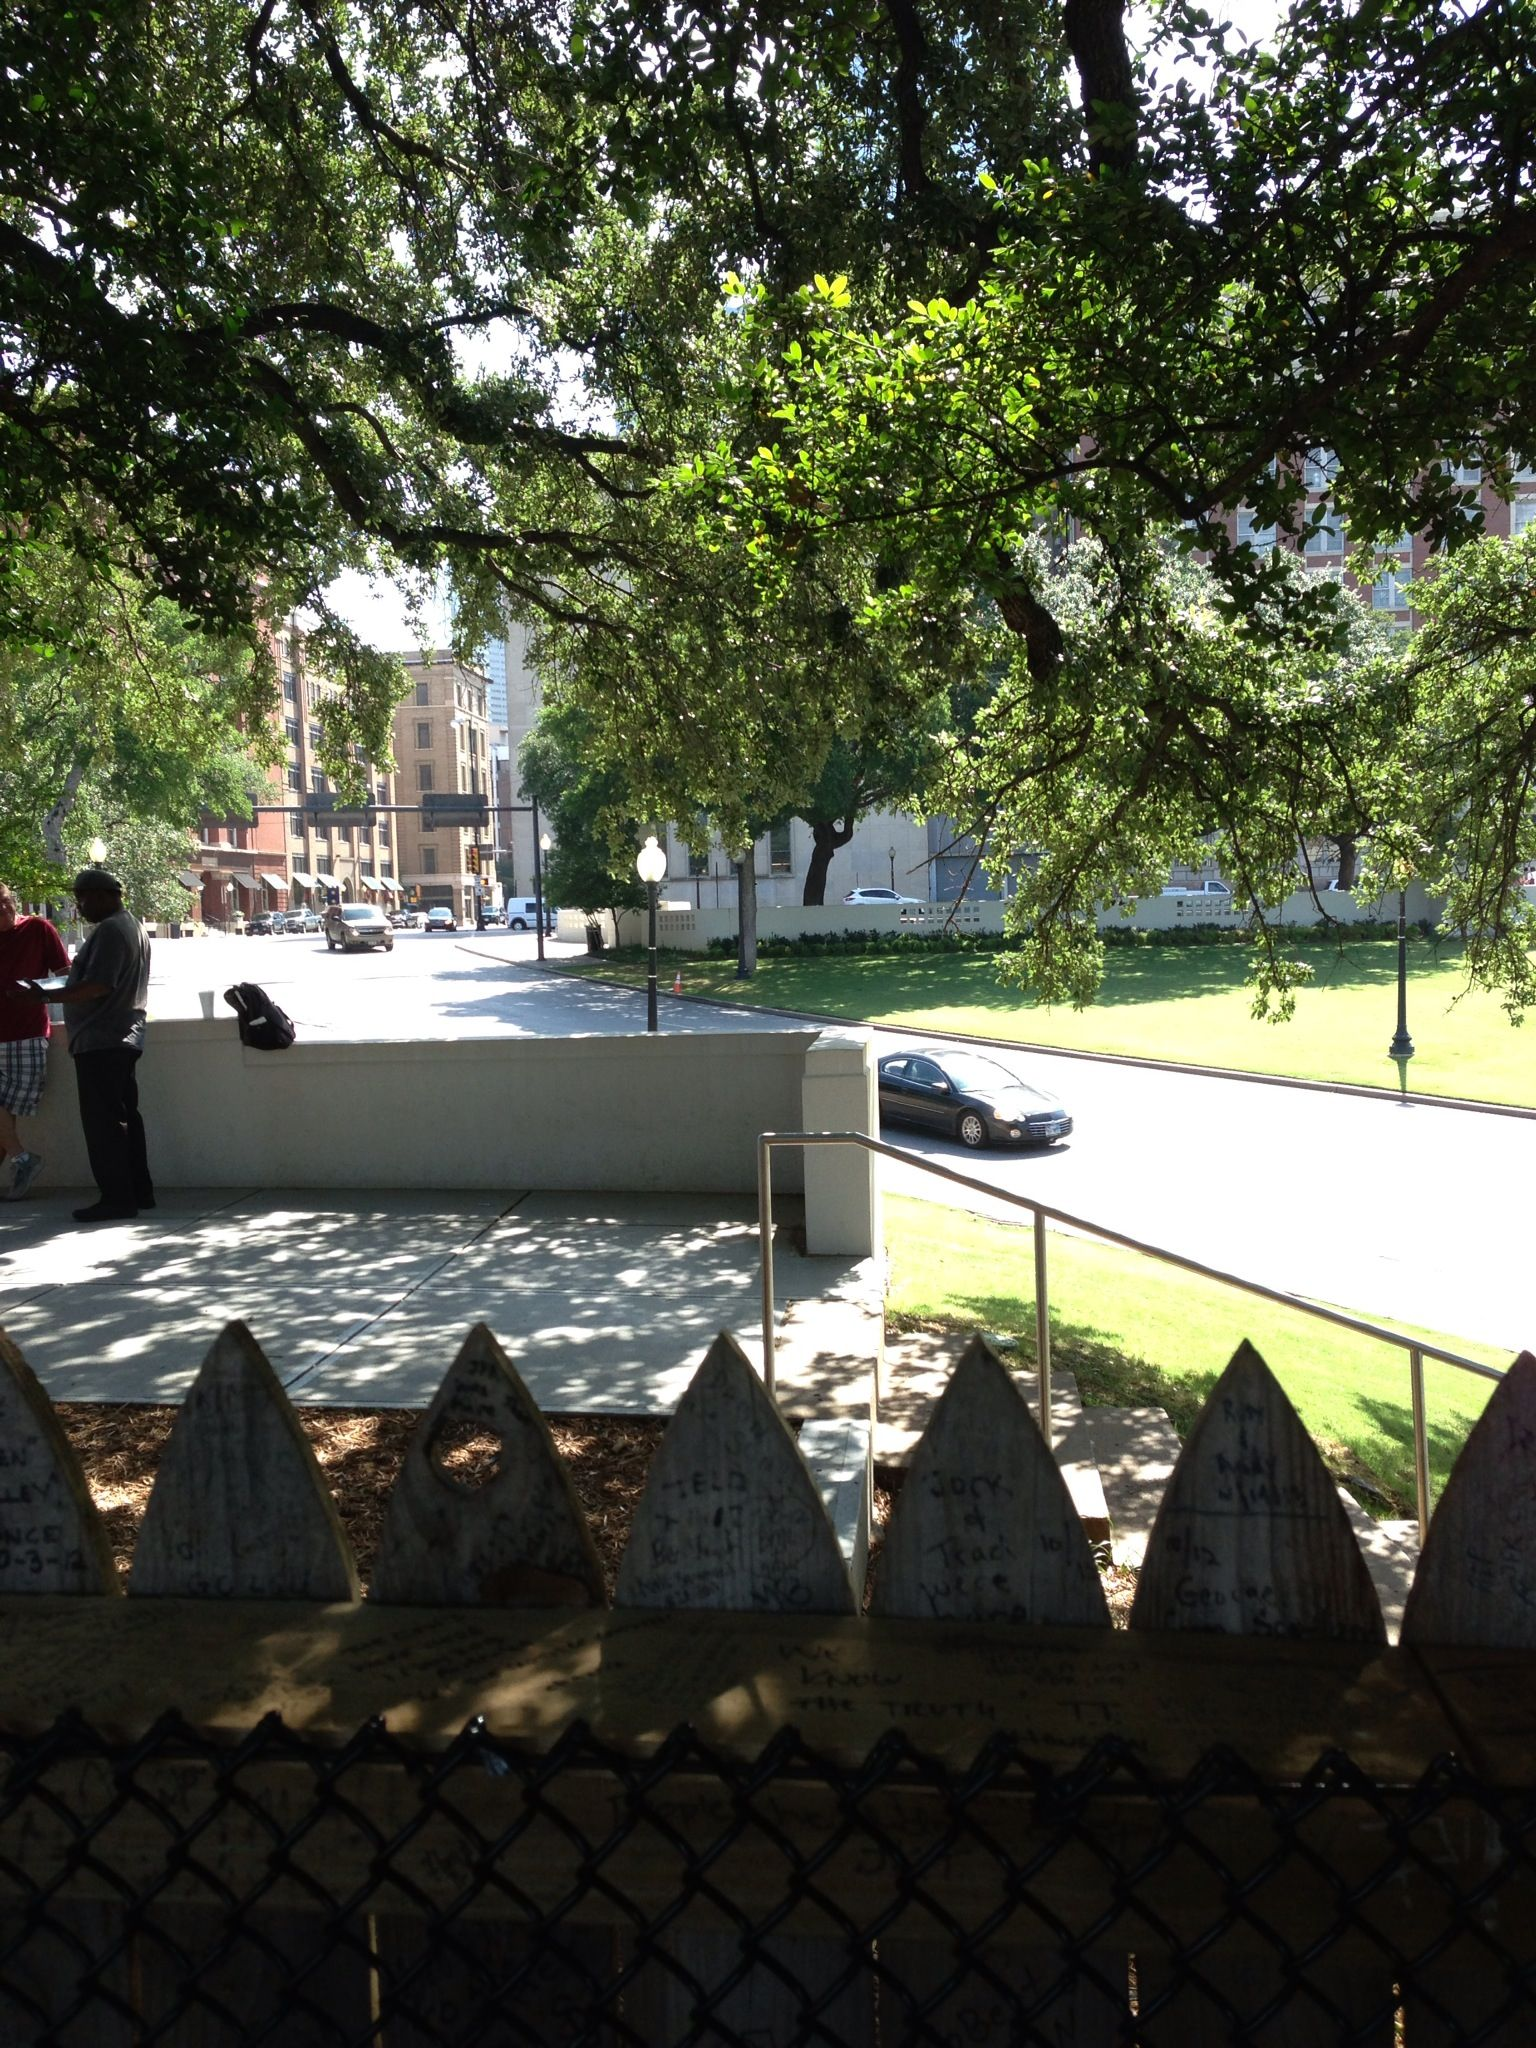 View From Behind The Picket Fence Atop The Grassy Knoll At